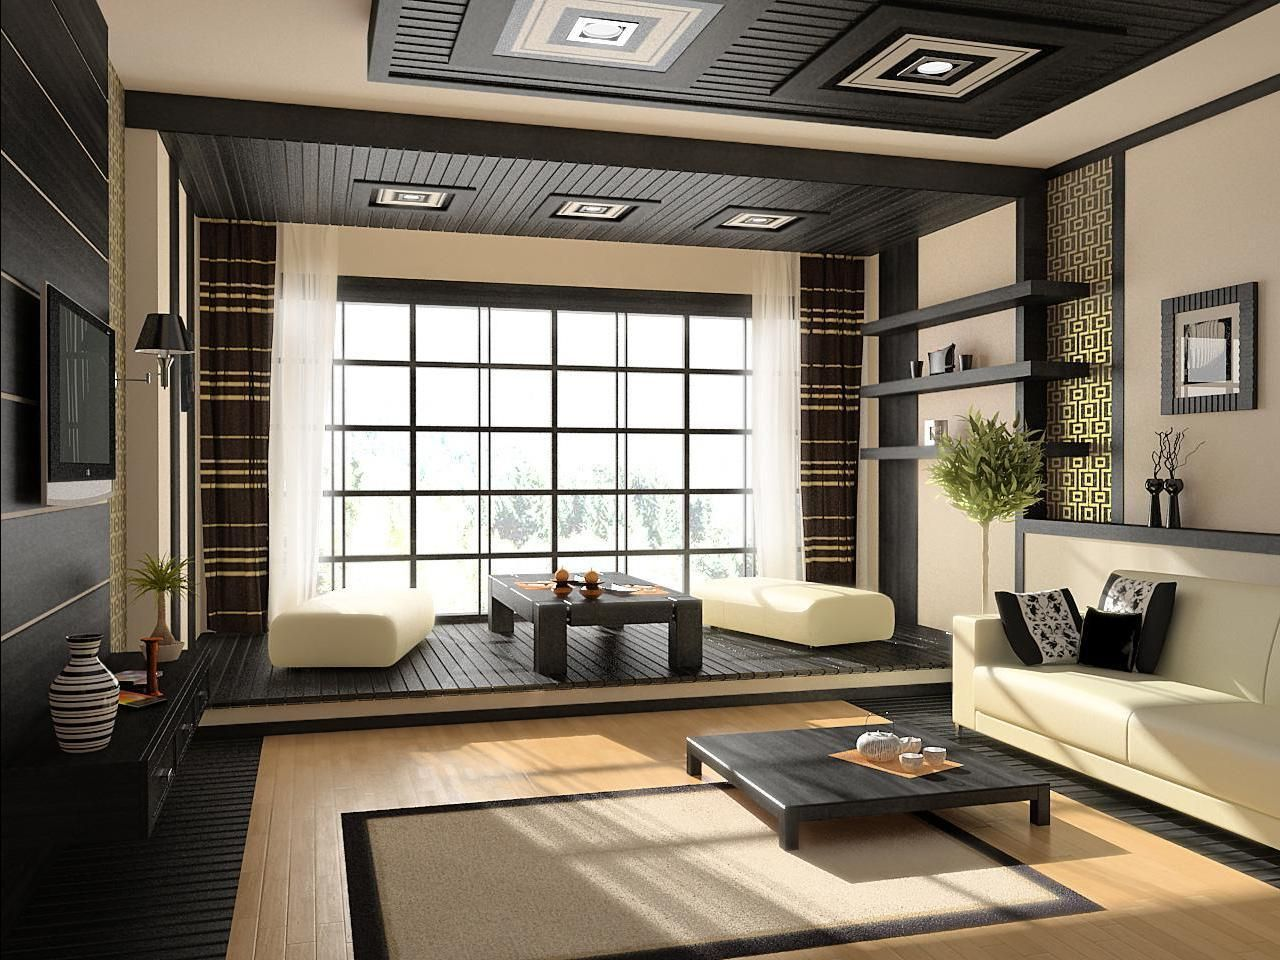 CREATE A ZEN INTERIOR WITH JAPANESE STYLE INFLUENCE Zen interiors